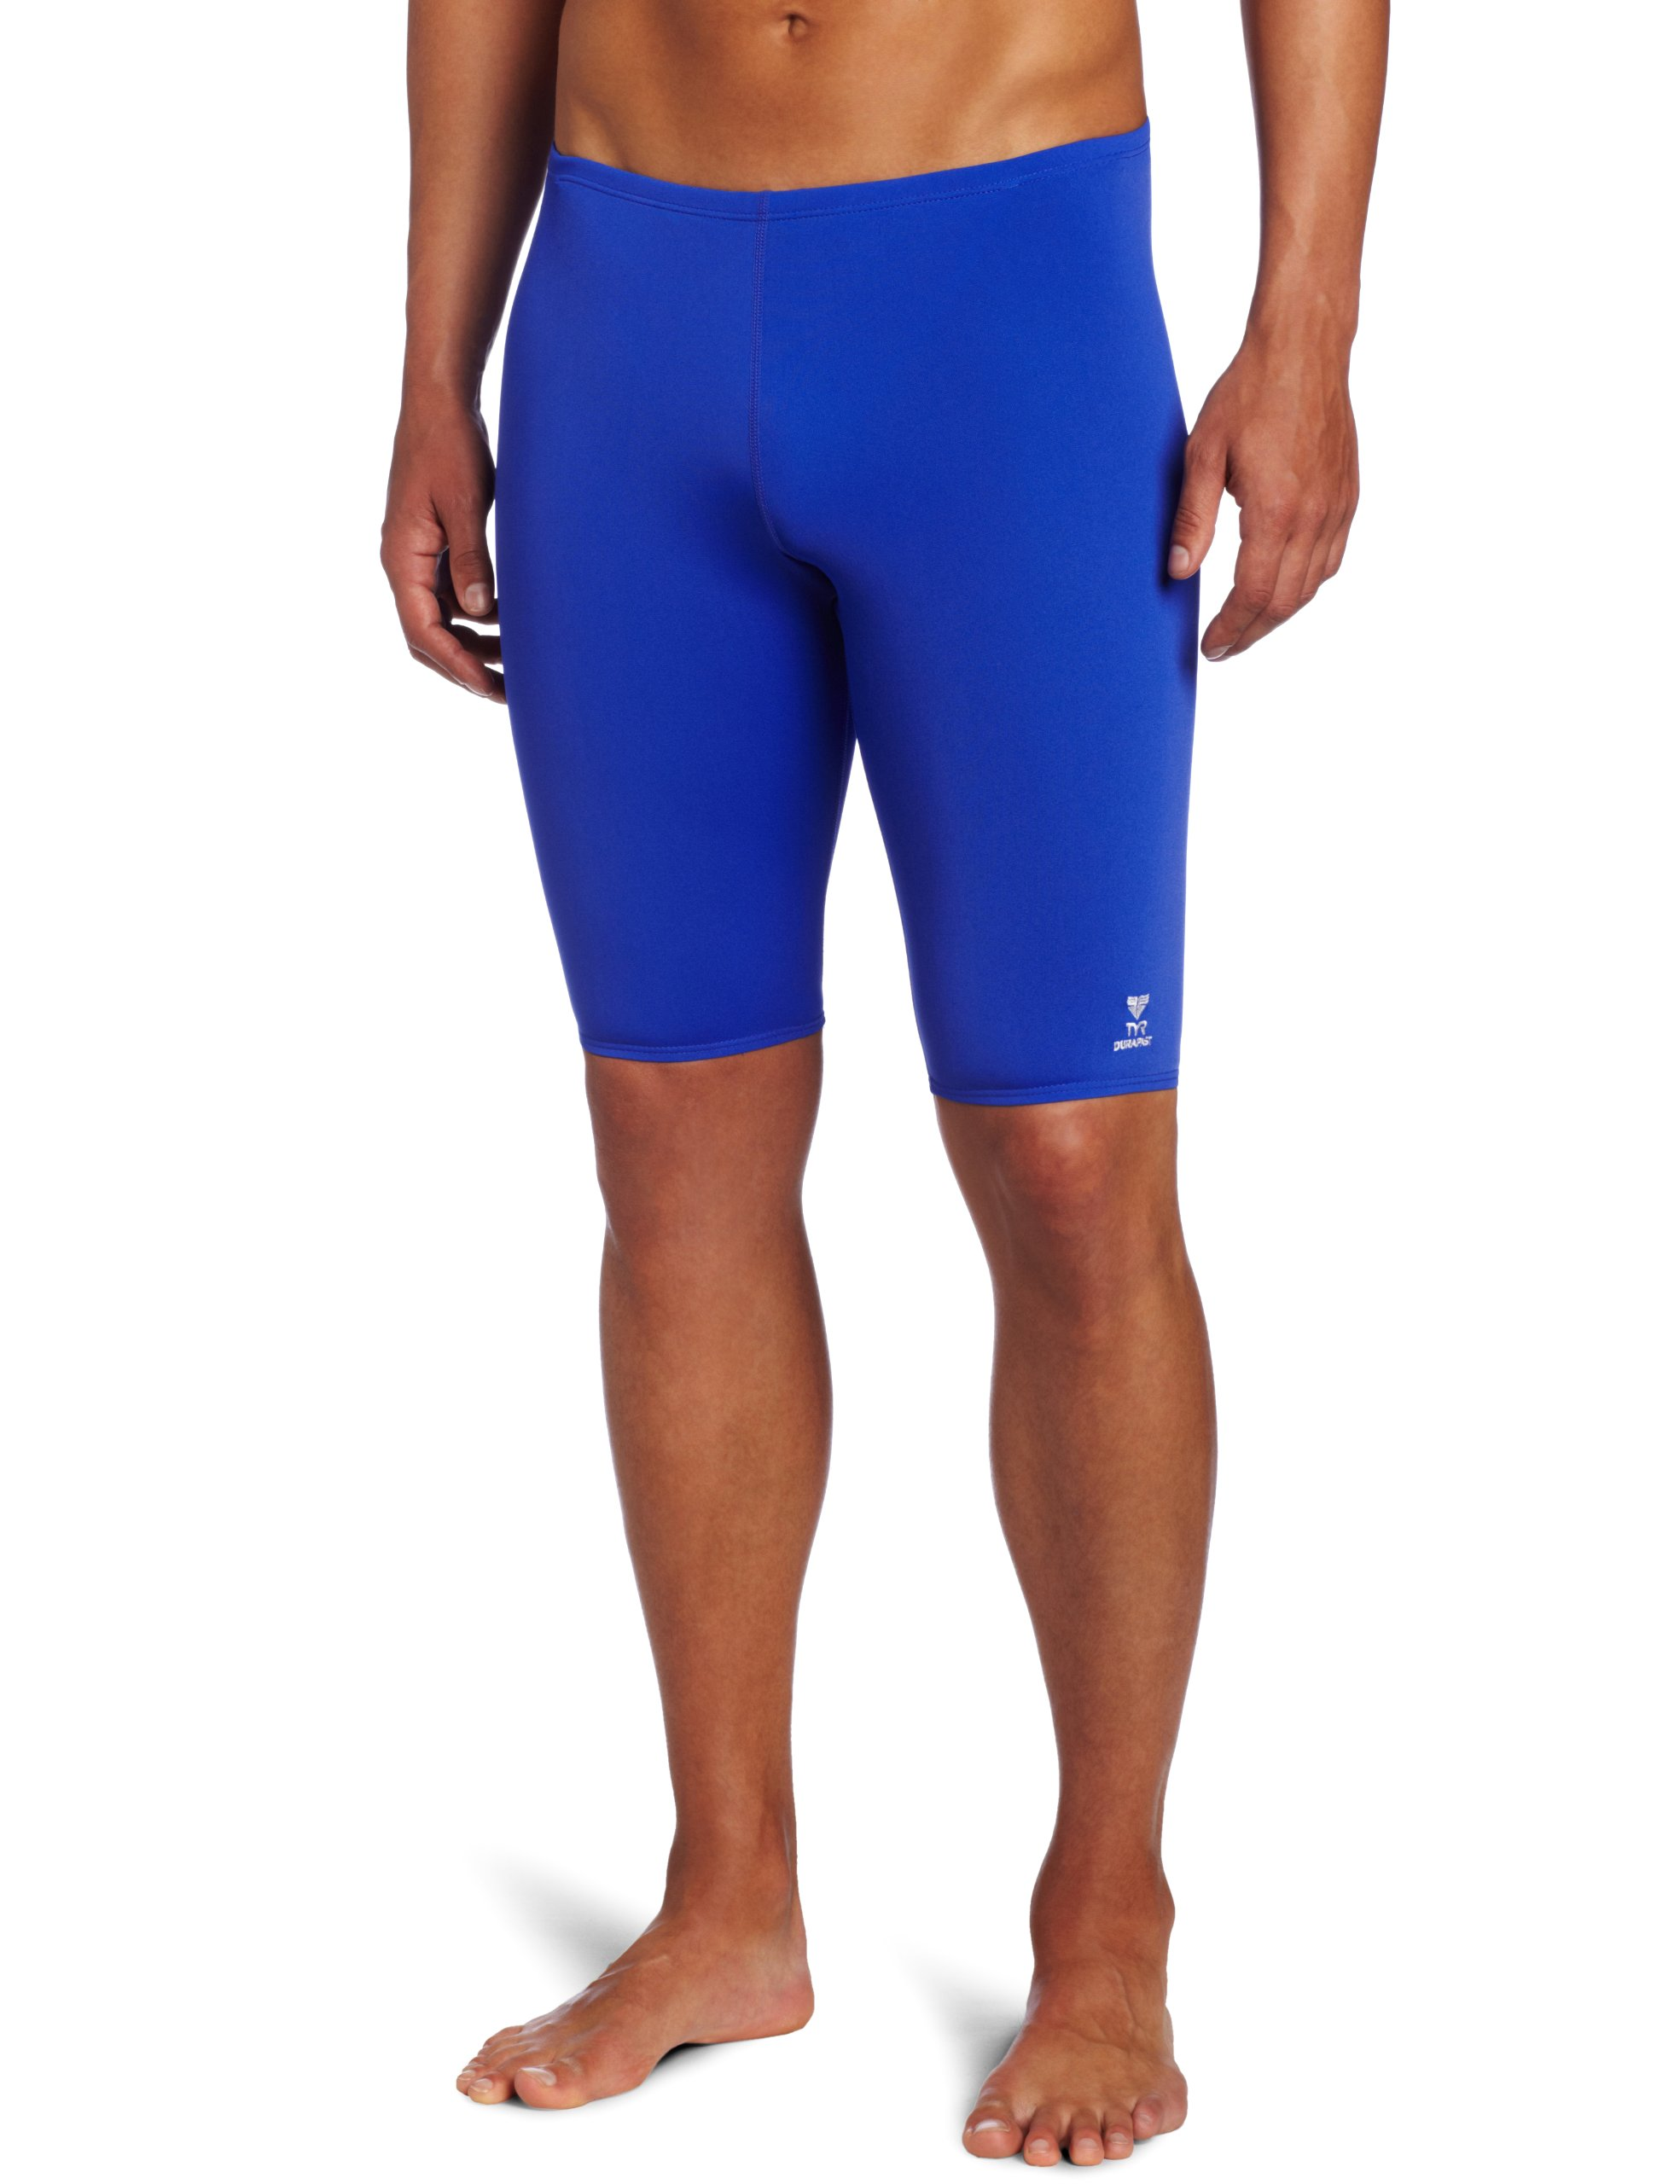 TYR Men's Solid Durafast Jammer Swim Suit (Royal, 34)